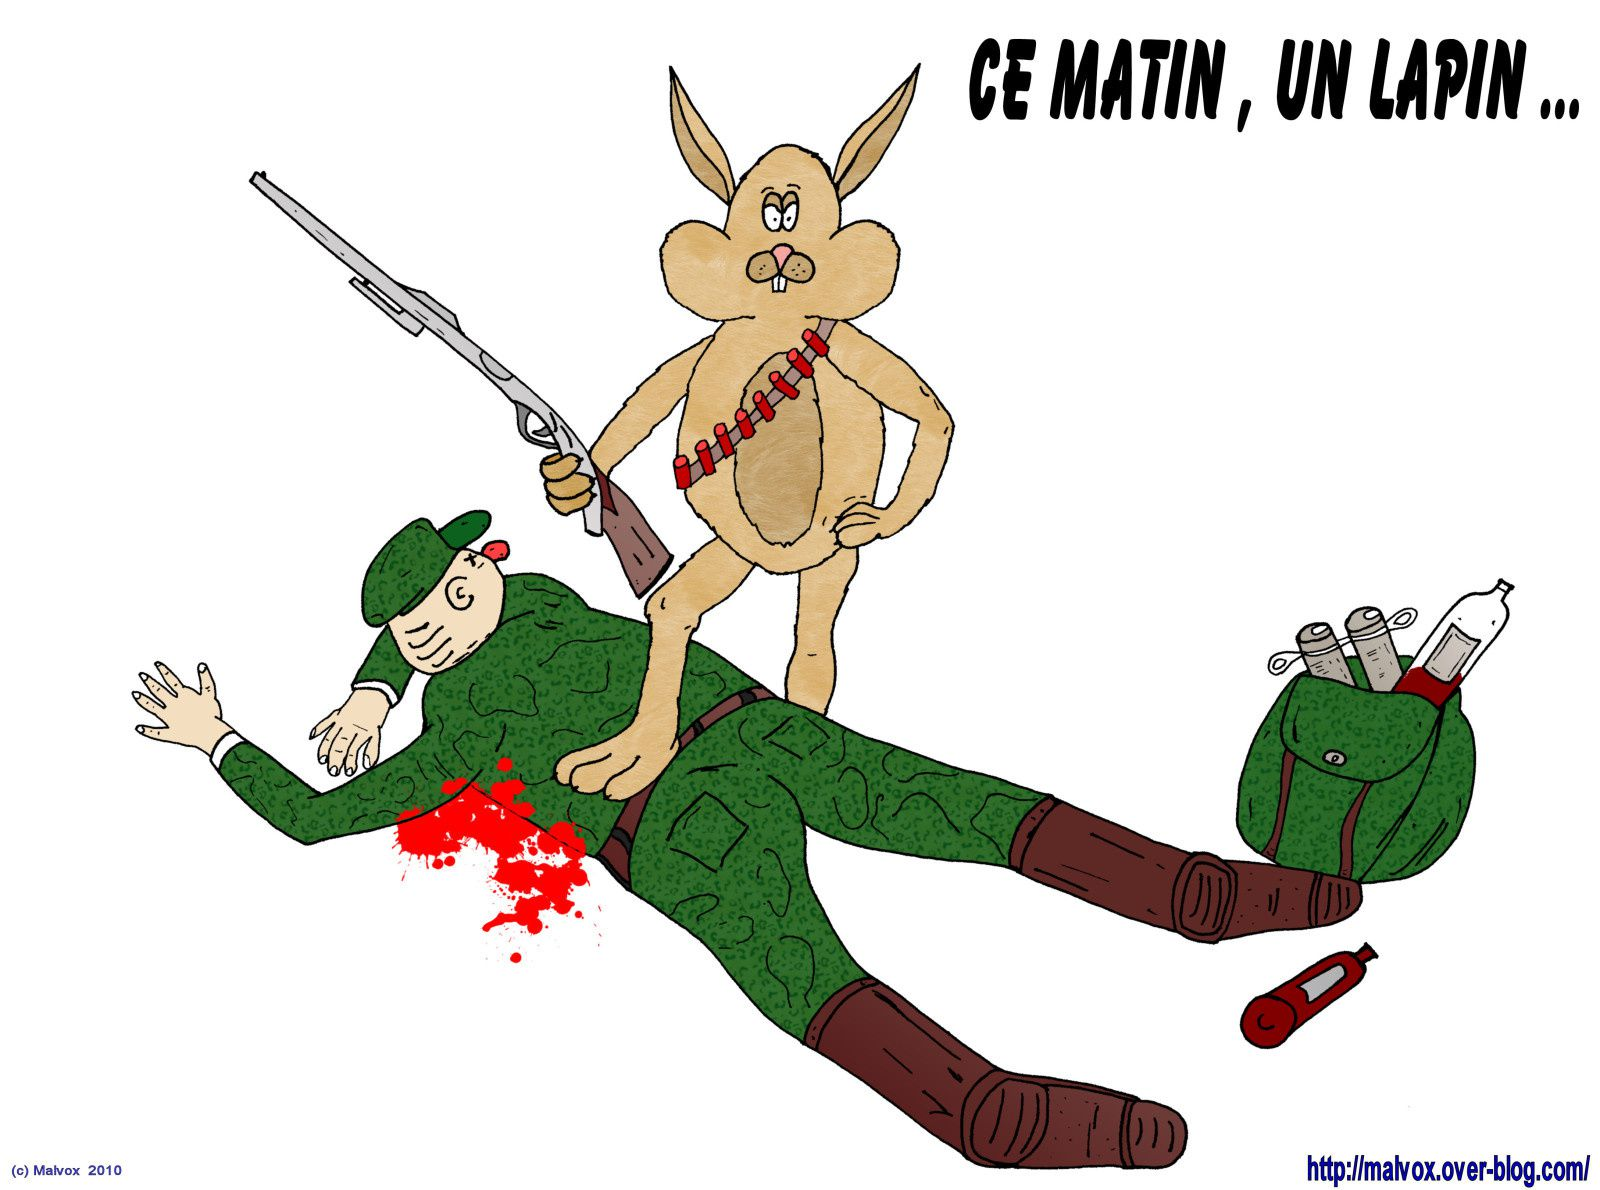 Association d'images Ob_aaddd3_lapin-chasseur